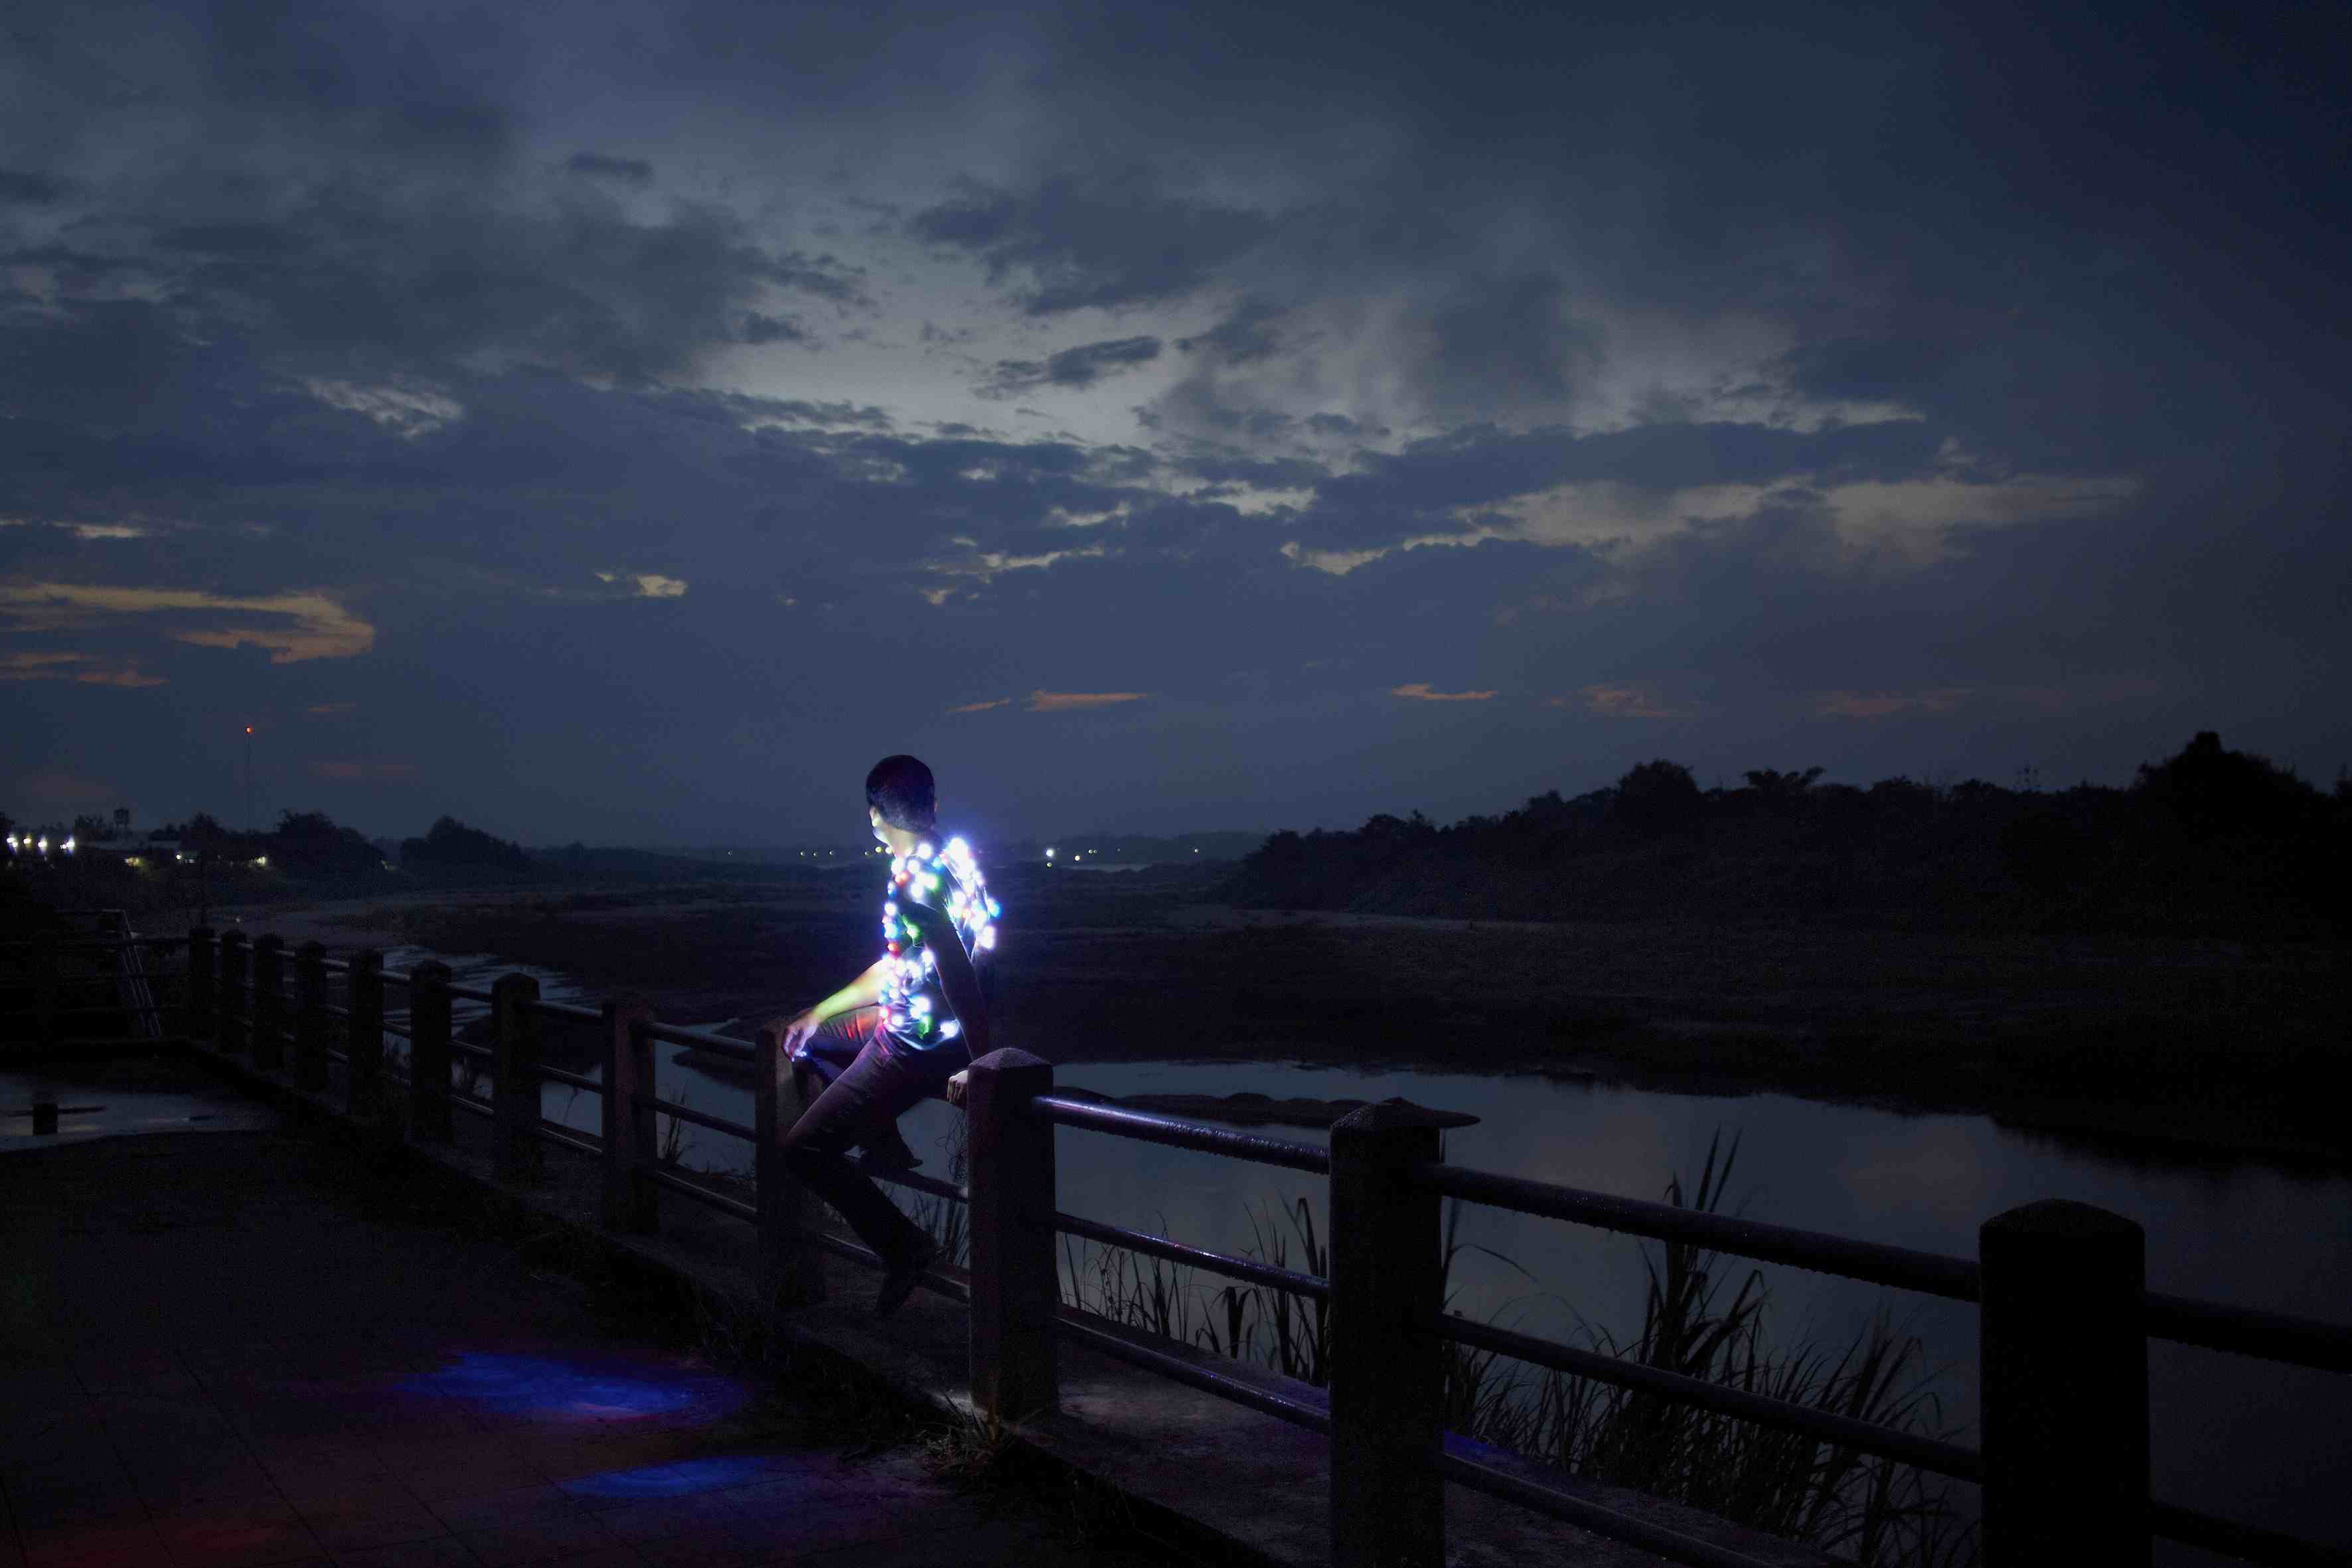 Power Boy (Mekong) by Apichatpong Weerasethakul. Courtesy the artist